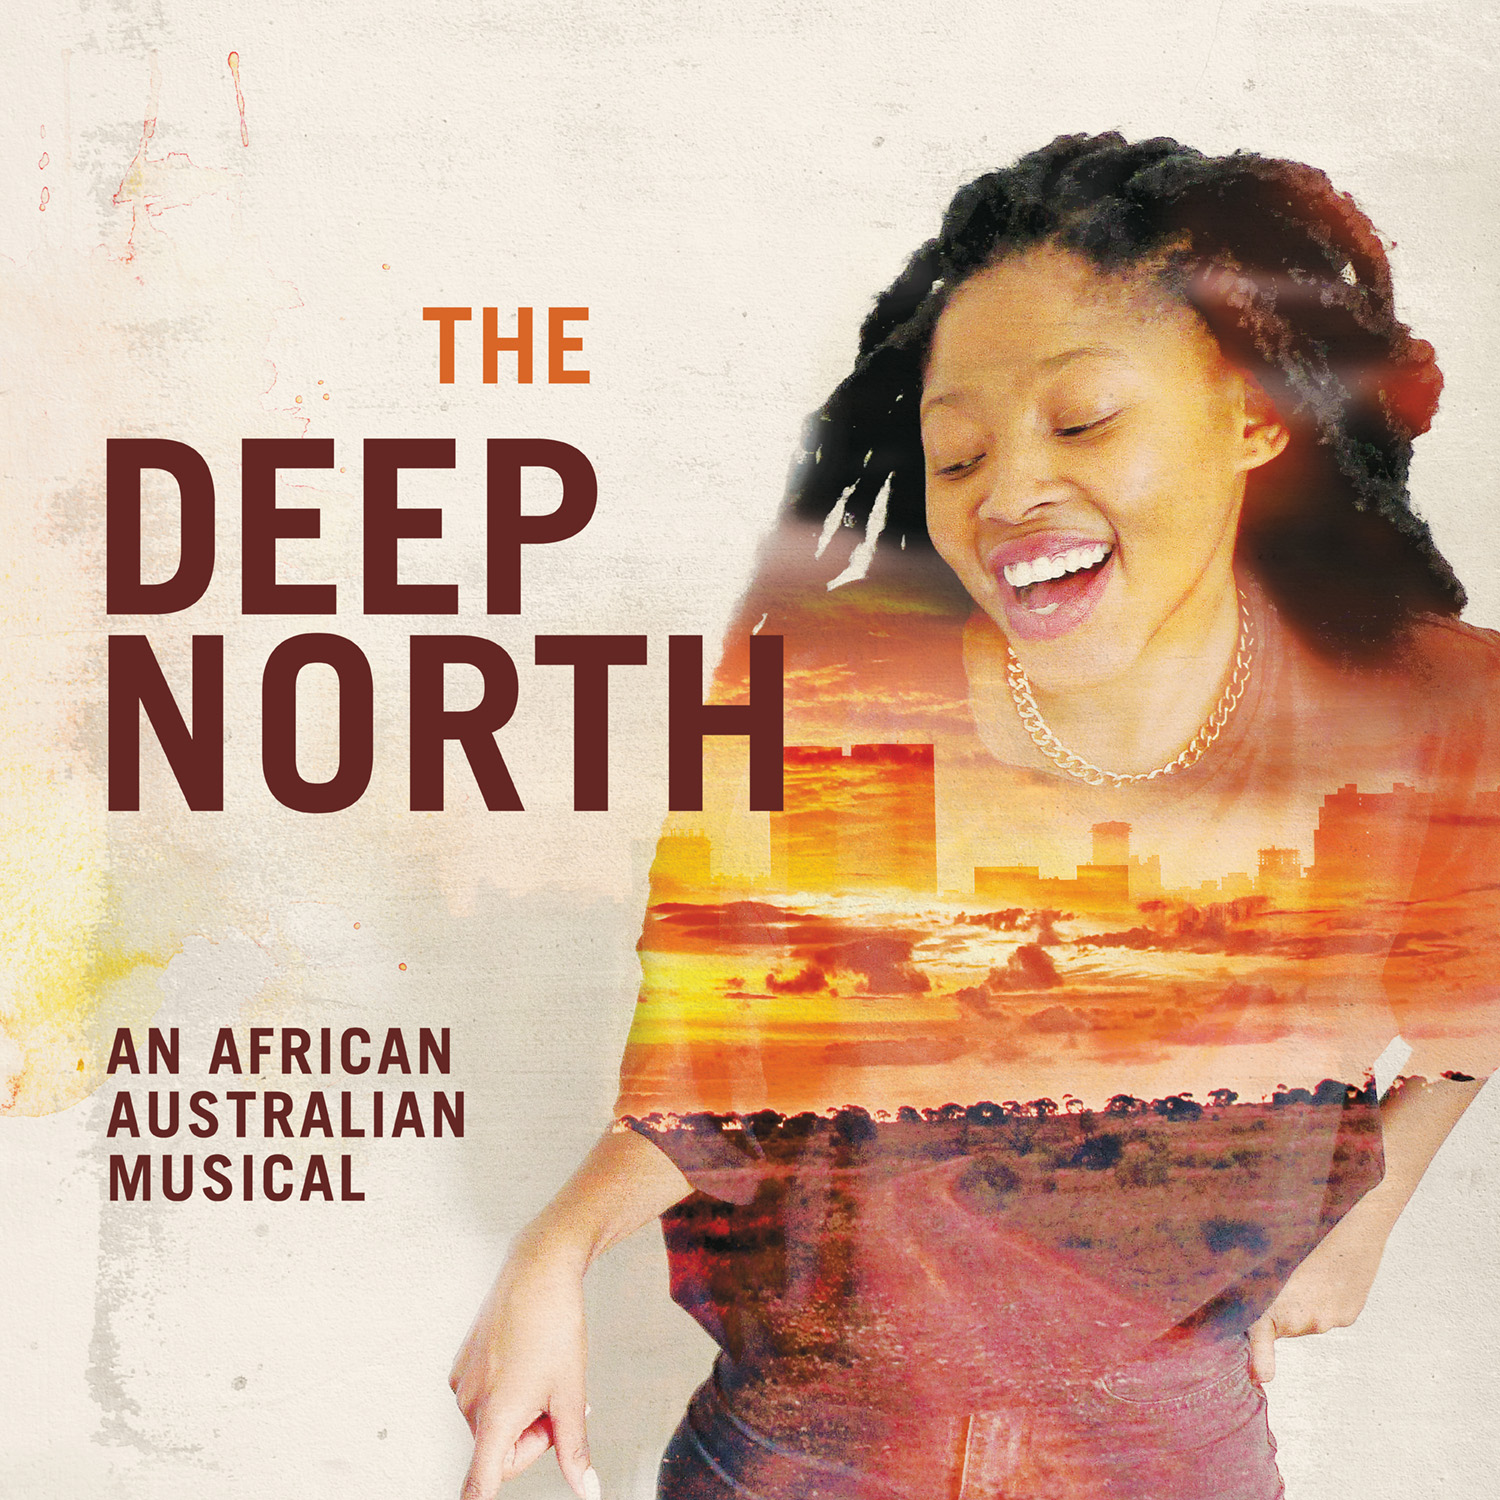 The Deep North is a celebration of the African diaspora in South Australia. In an immersive gallery environment four characters play out their stories, using a hybrid mix of theatre, film and music.